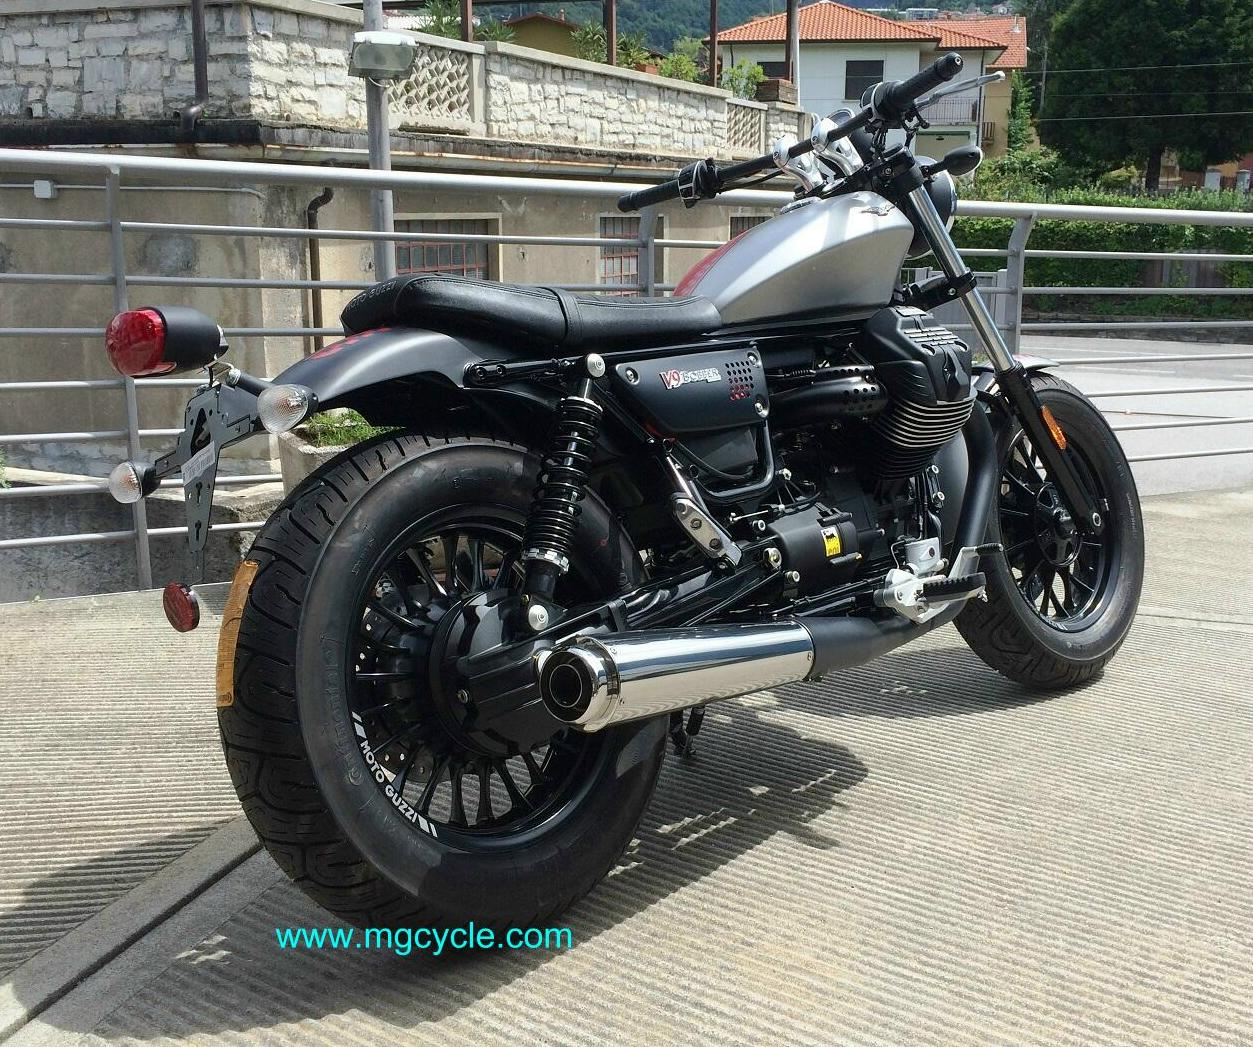 Mistral V9 Bobber and V9 Roamer conical slip-on mufflers